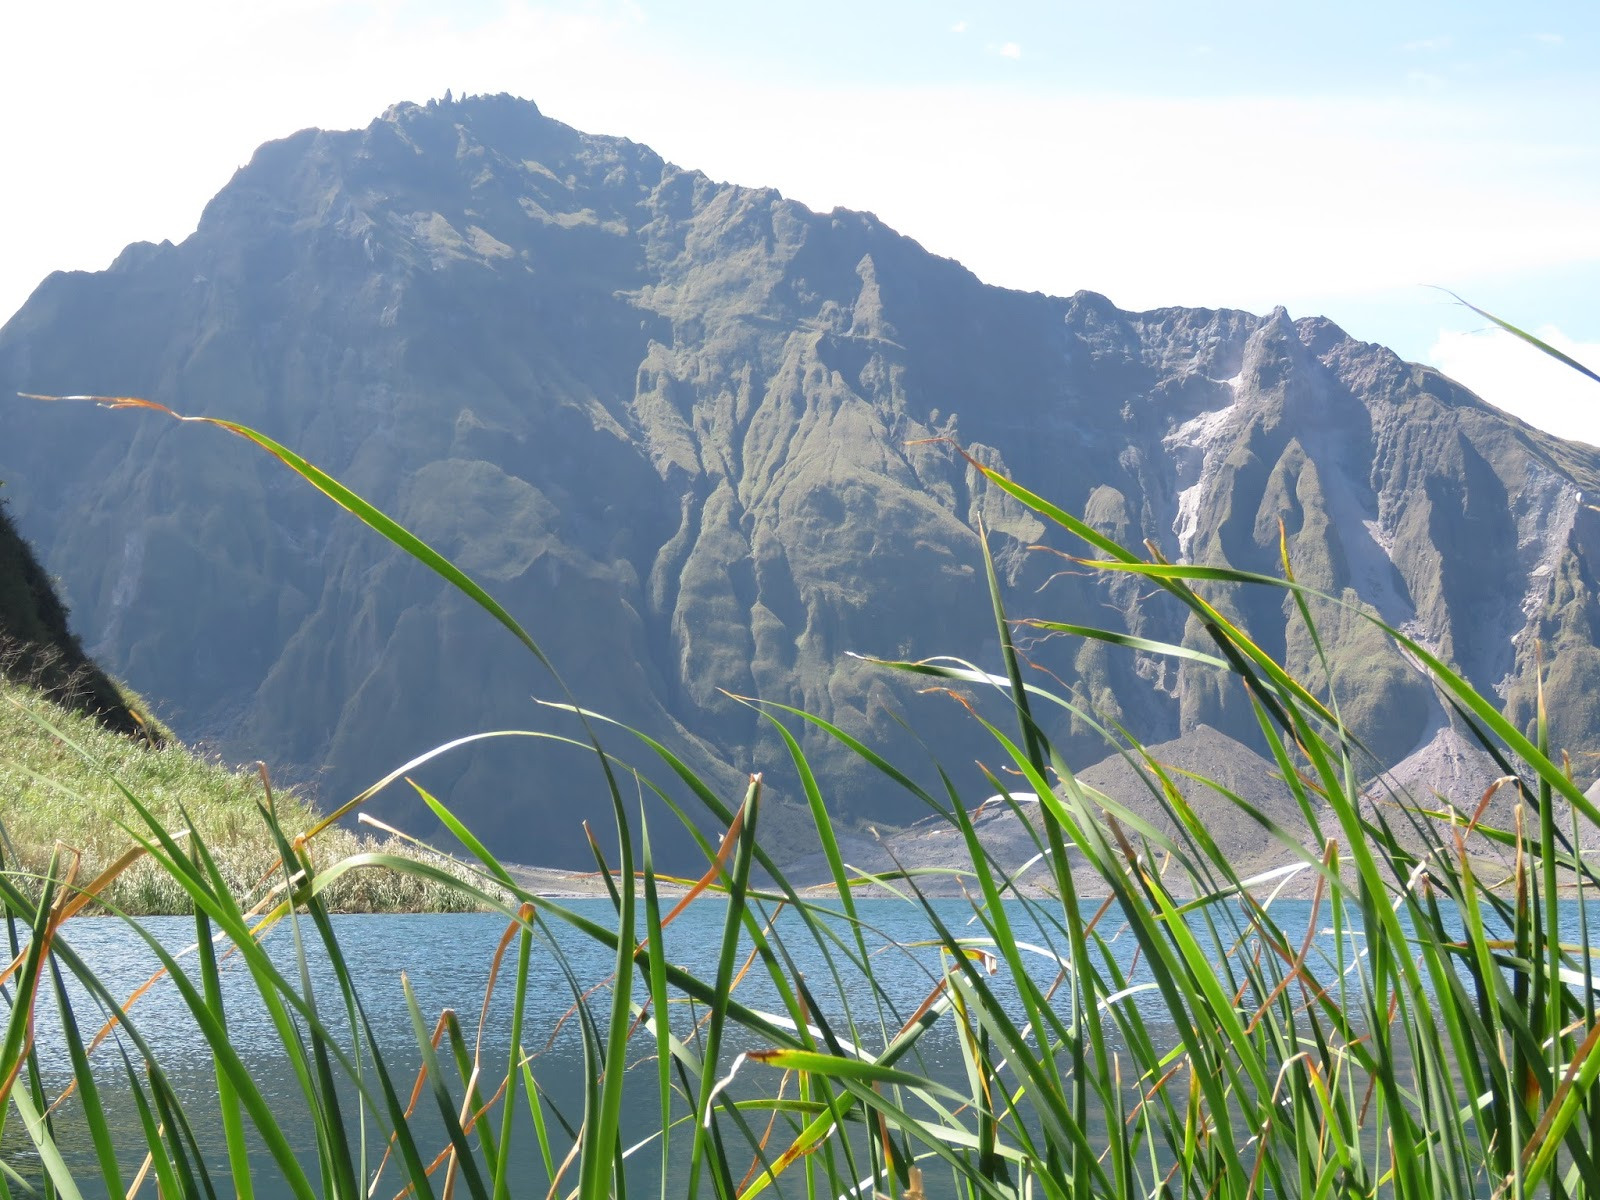 Crater of Mt. Pinatubo